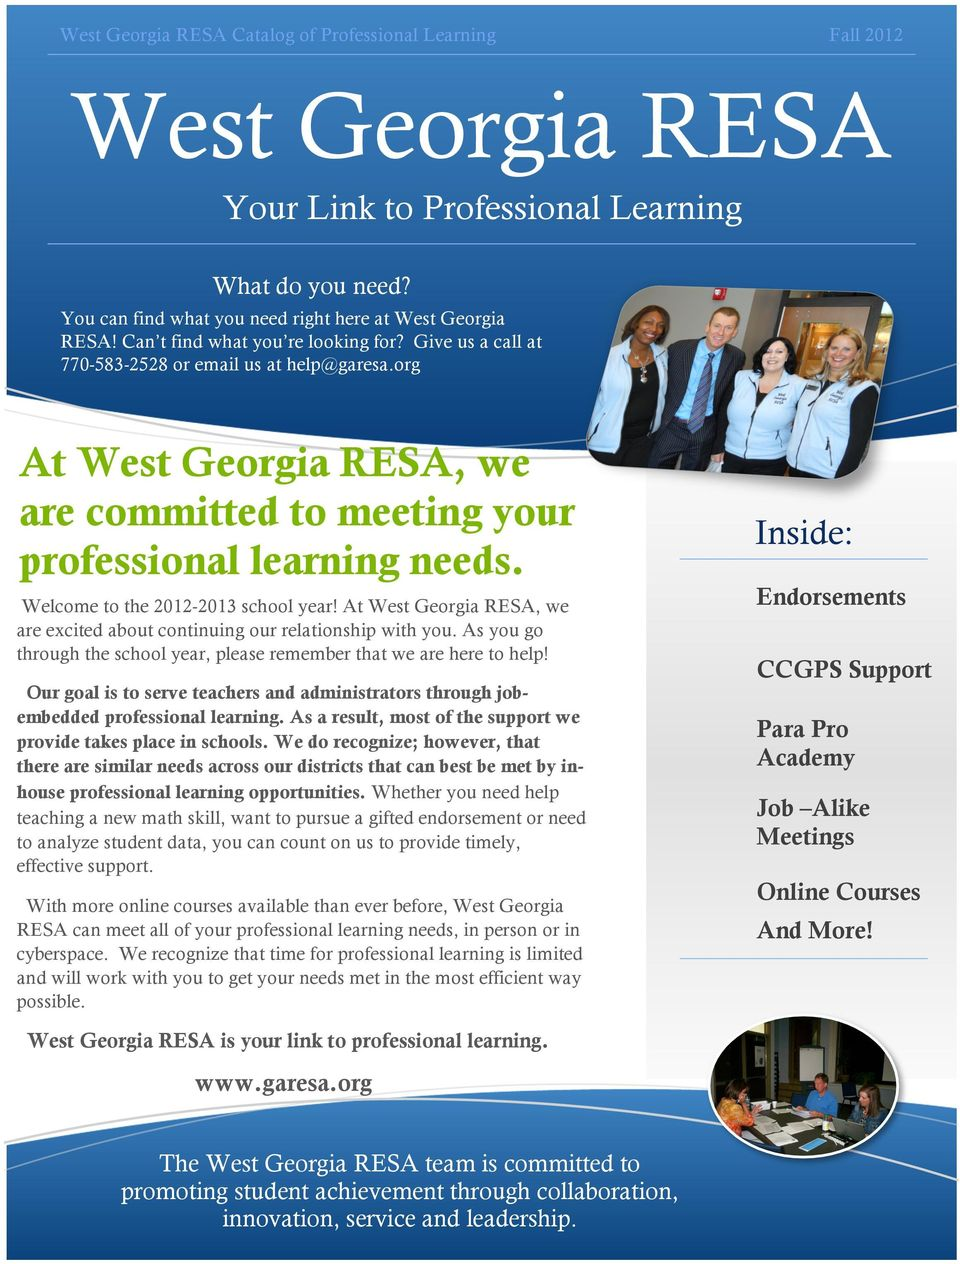 Welcome to the 2012-2013 school year! At West Georgia RESA, we are excited about continuing our relationship with you. As you go through the school year, please remember that we are here to help!